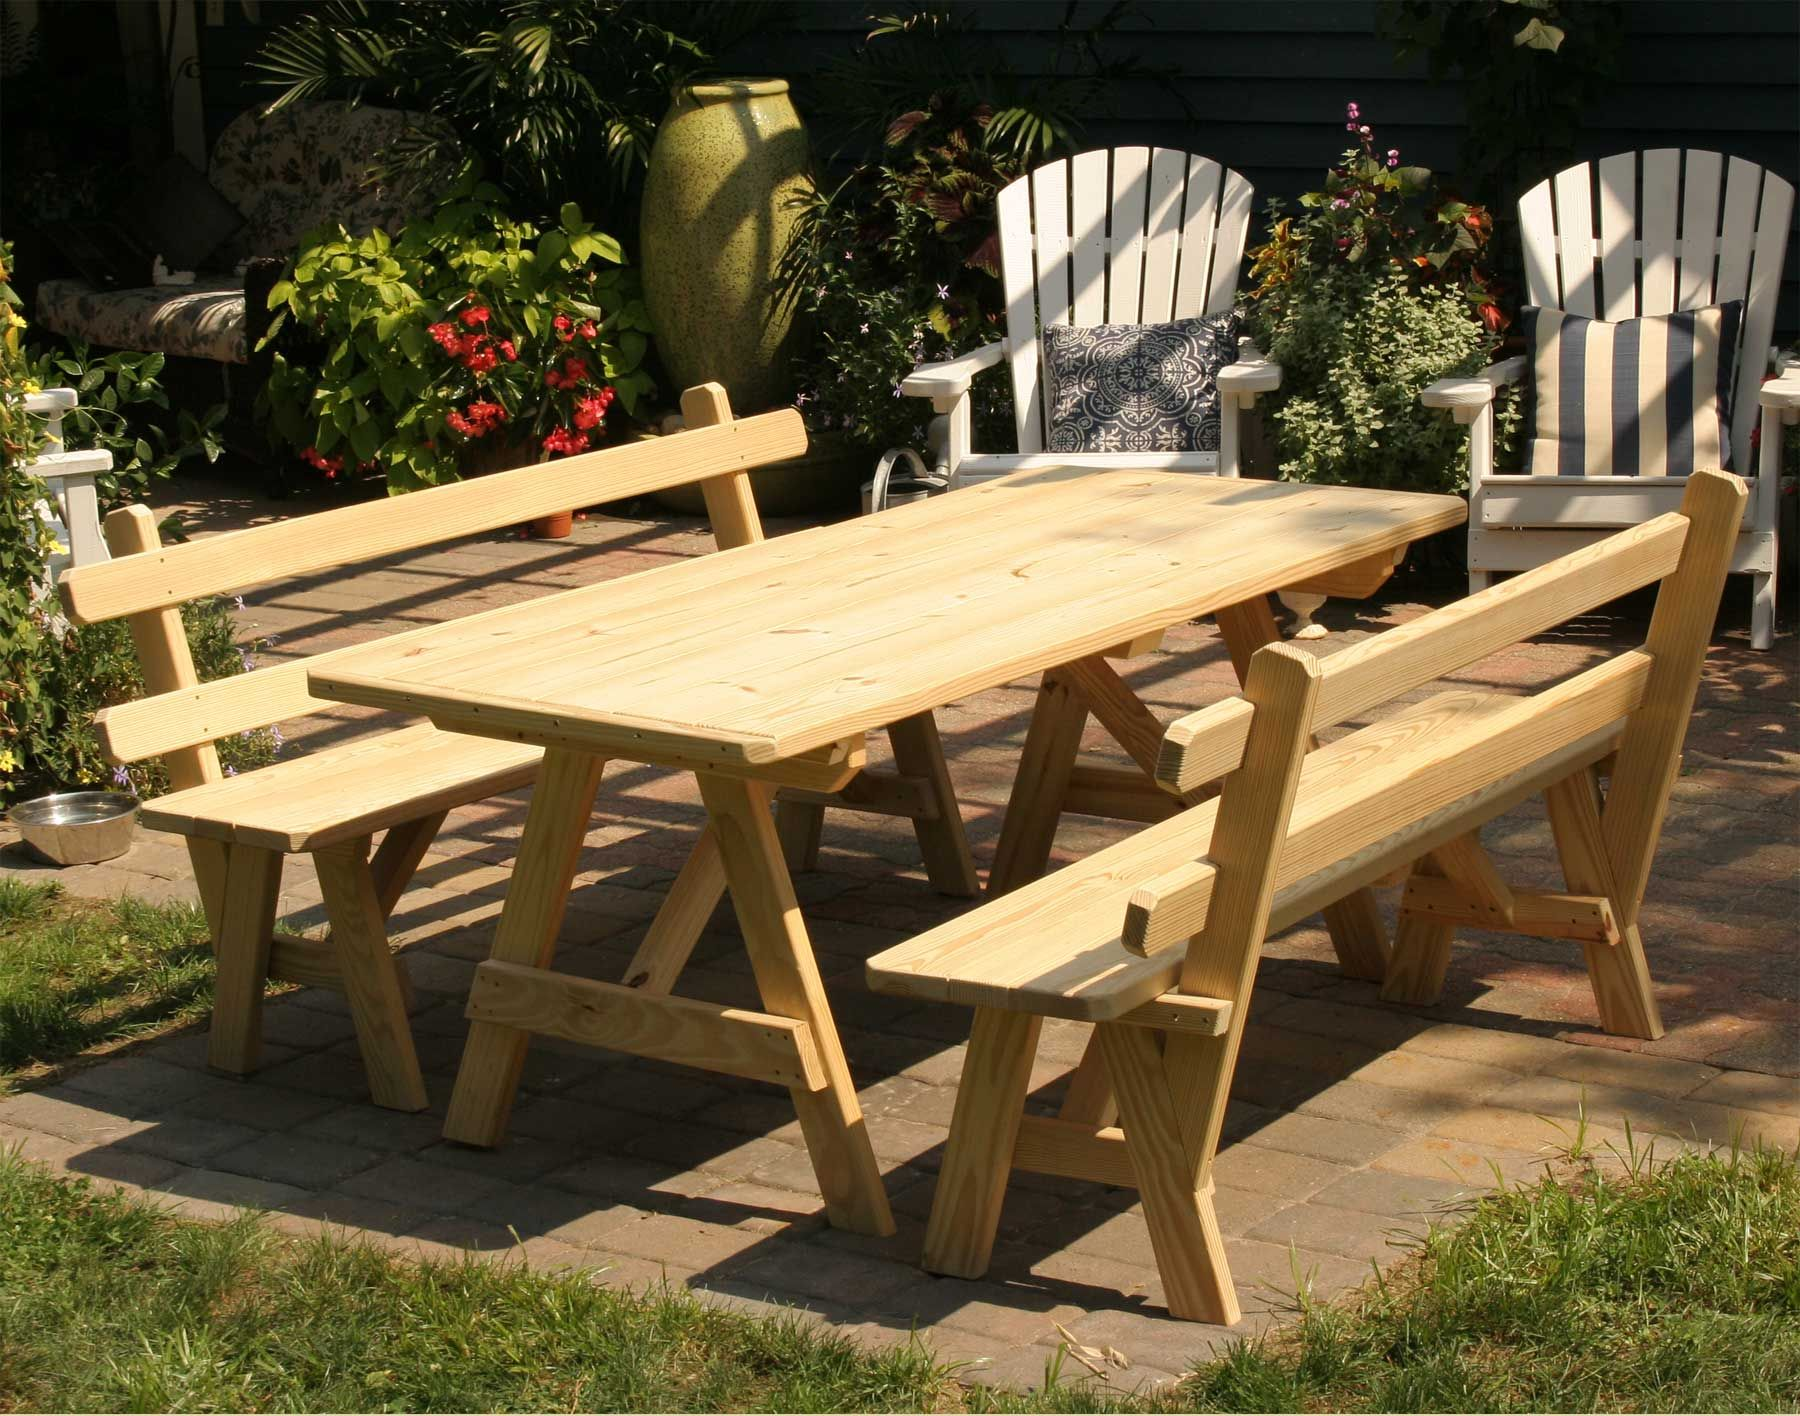 DIY 2x4 bench with back Can t wait to make this with a picnic